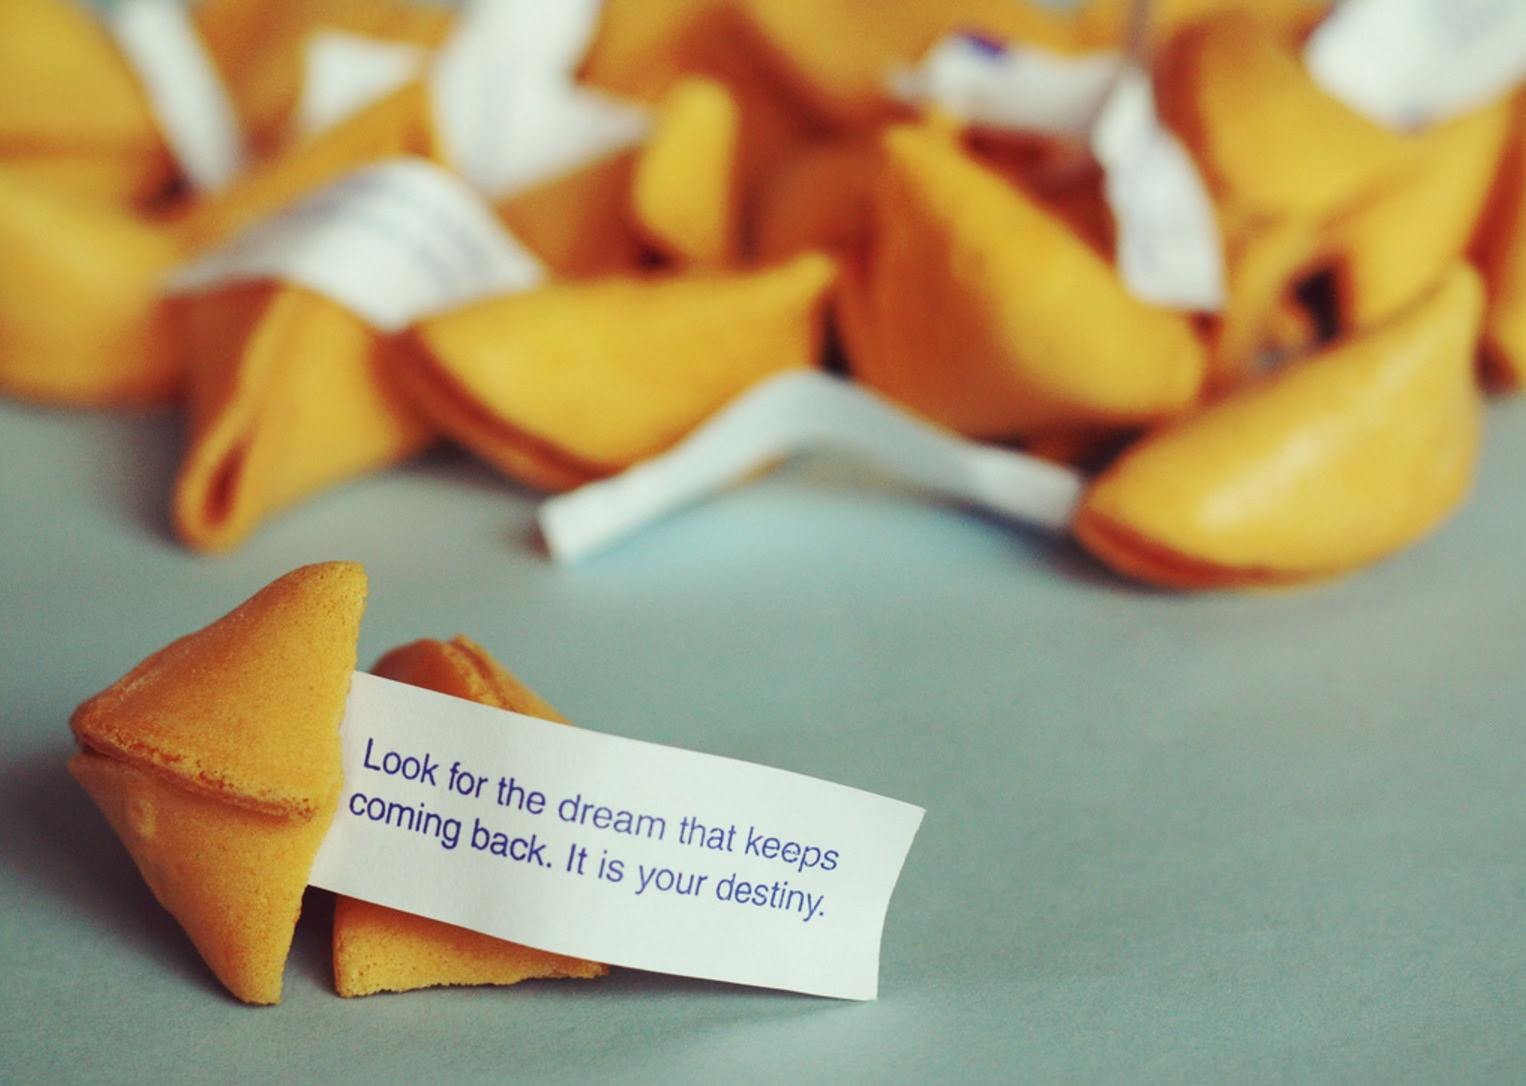 11 Fortune cookies are not a traditional Chinese custom they were actually invented